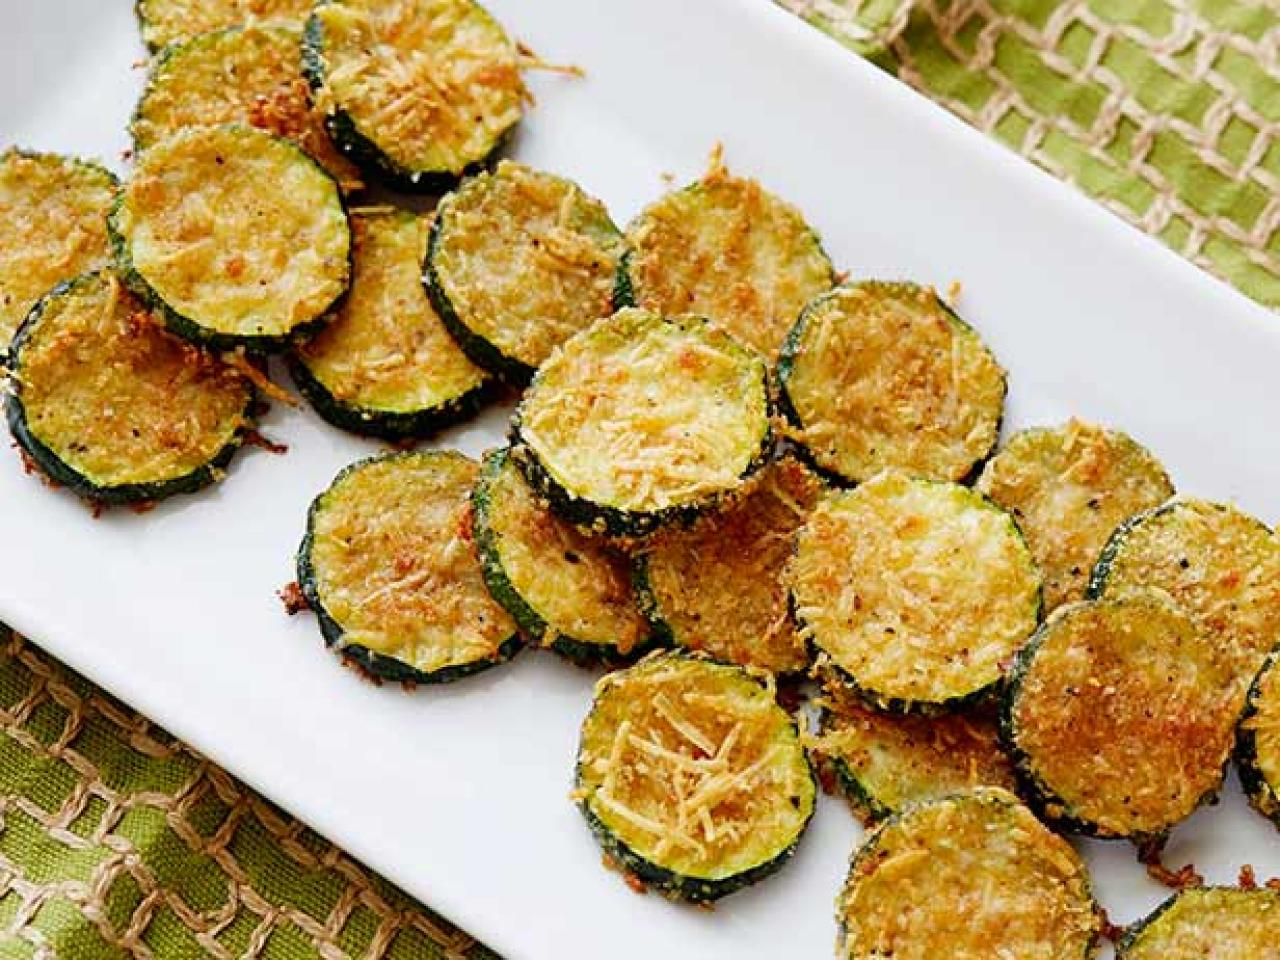 Zucchini chips graphic library Zucchini Parmesan Crisps Recipe | Ellie Krieger | Food Network graphic library